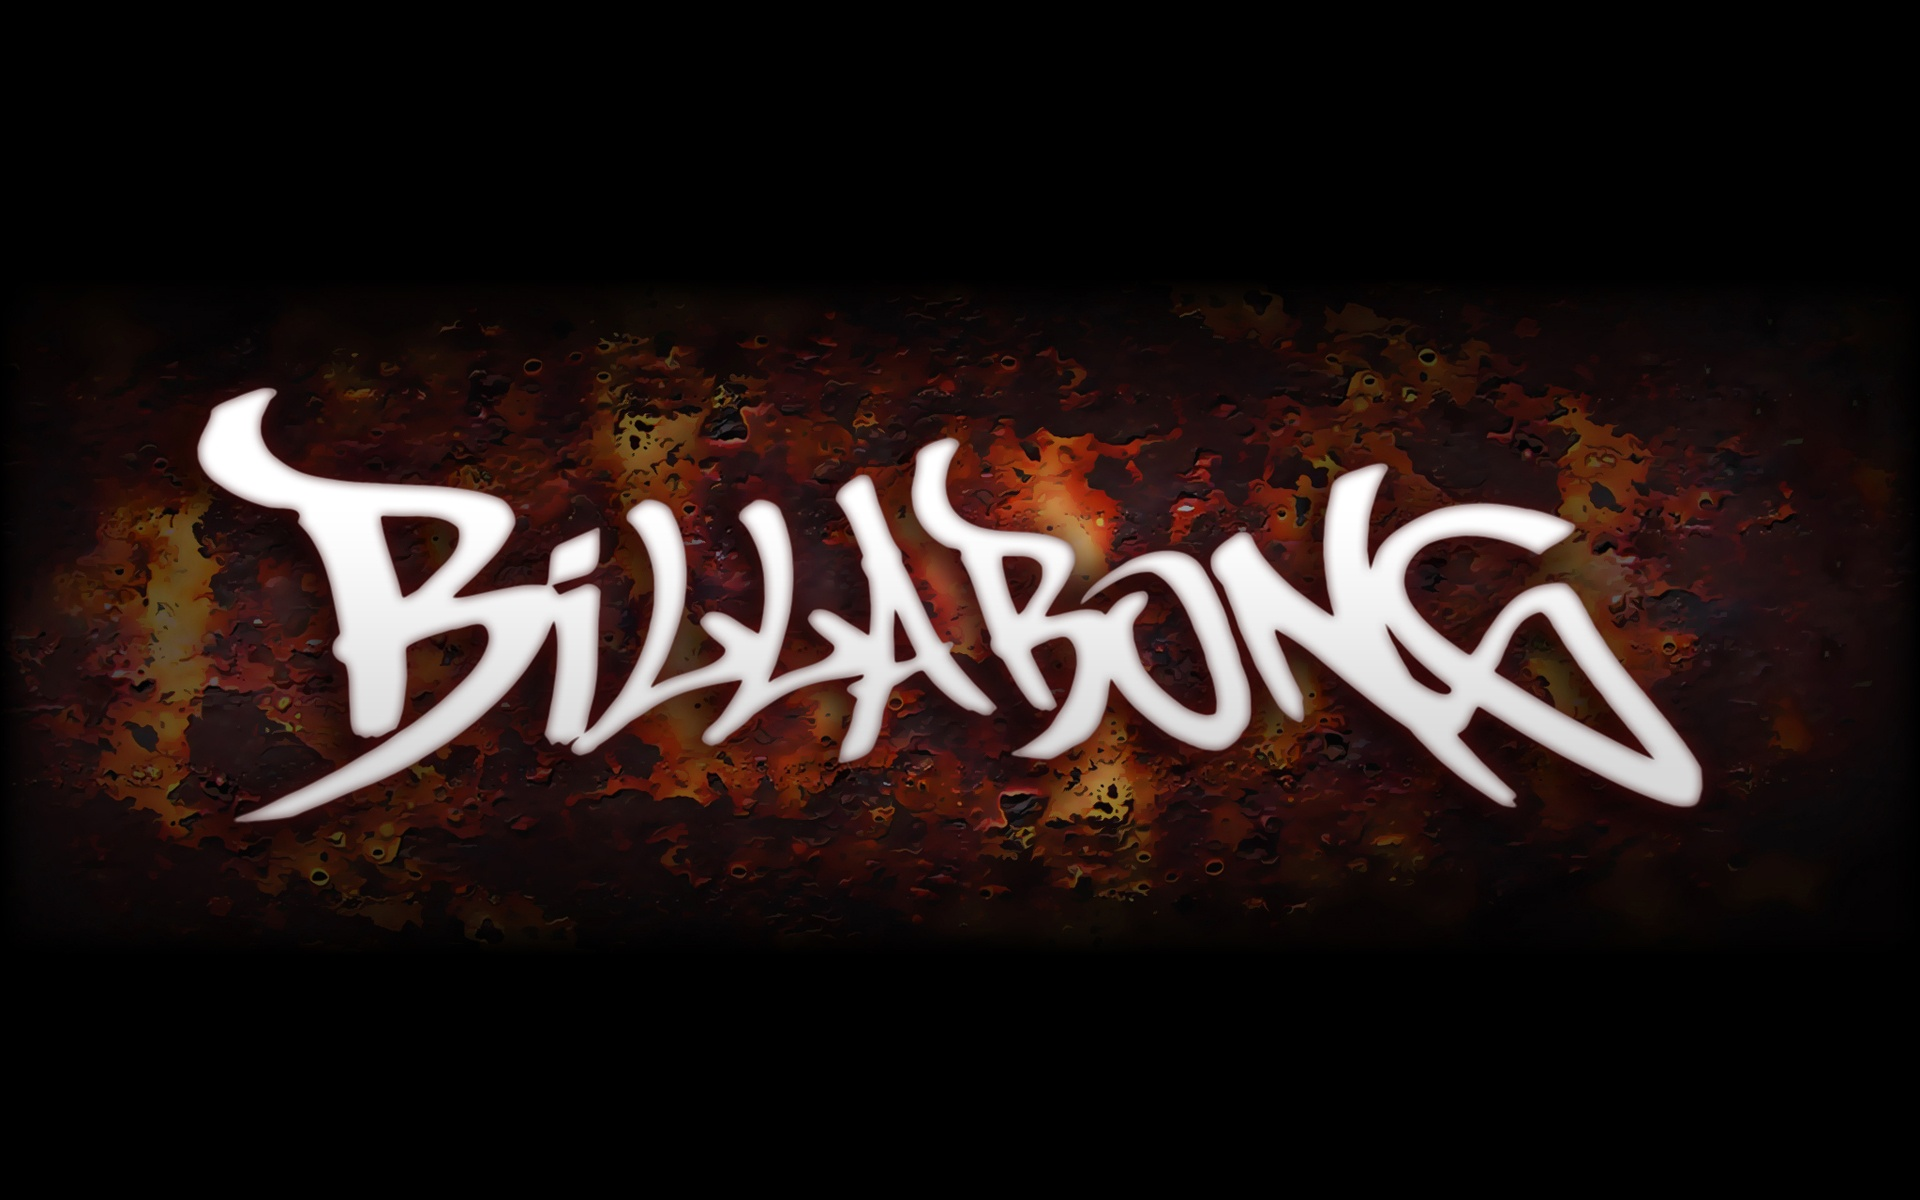 Billabong Logo Hd Wallpaper. Billabong Logo .